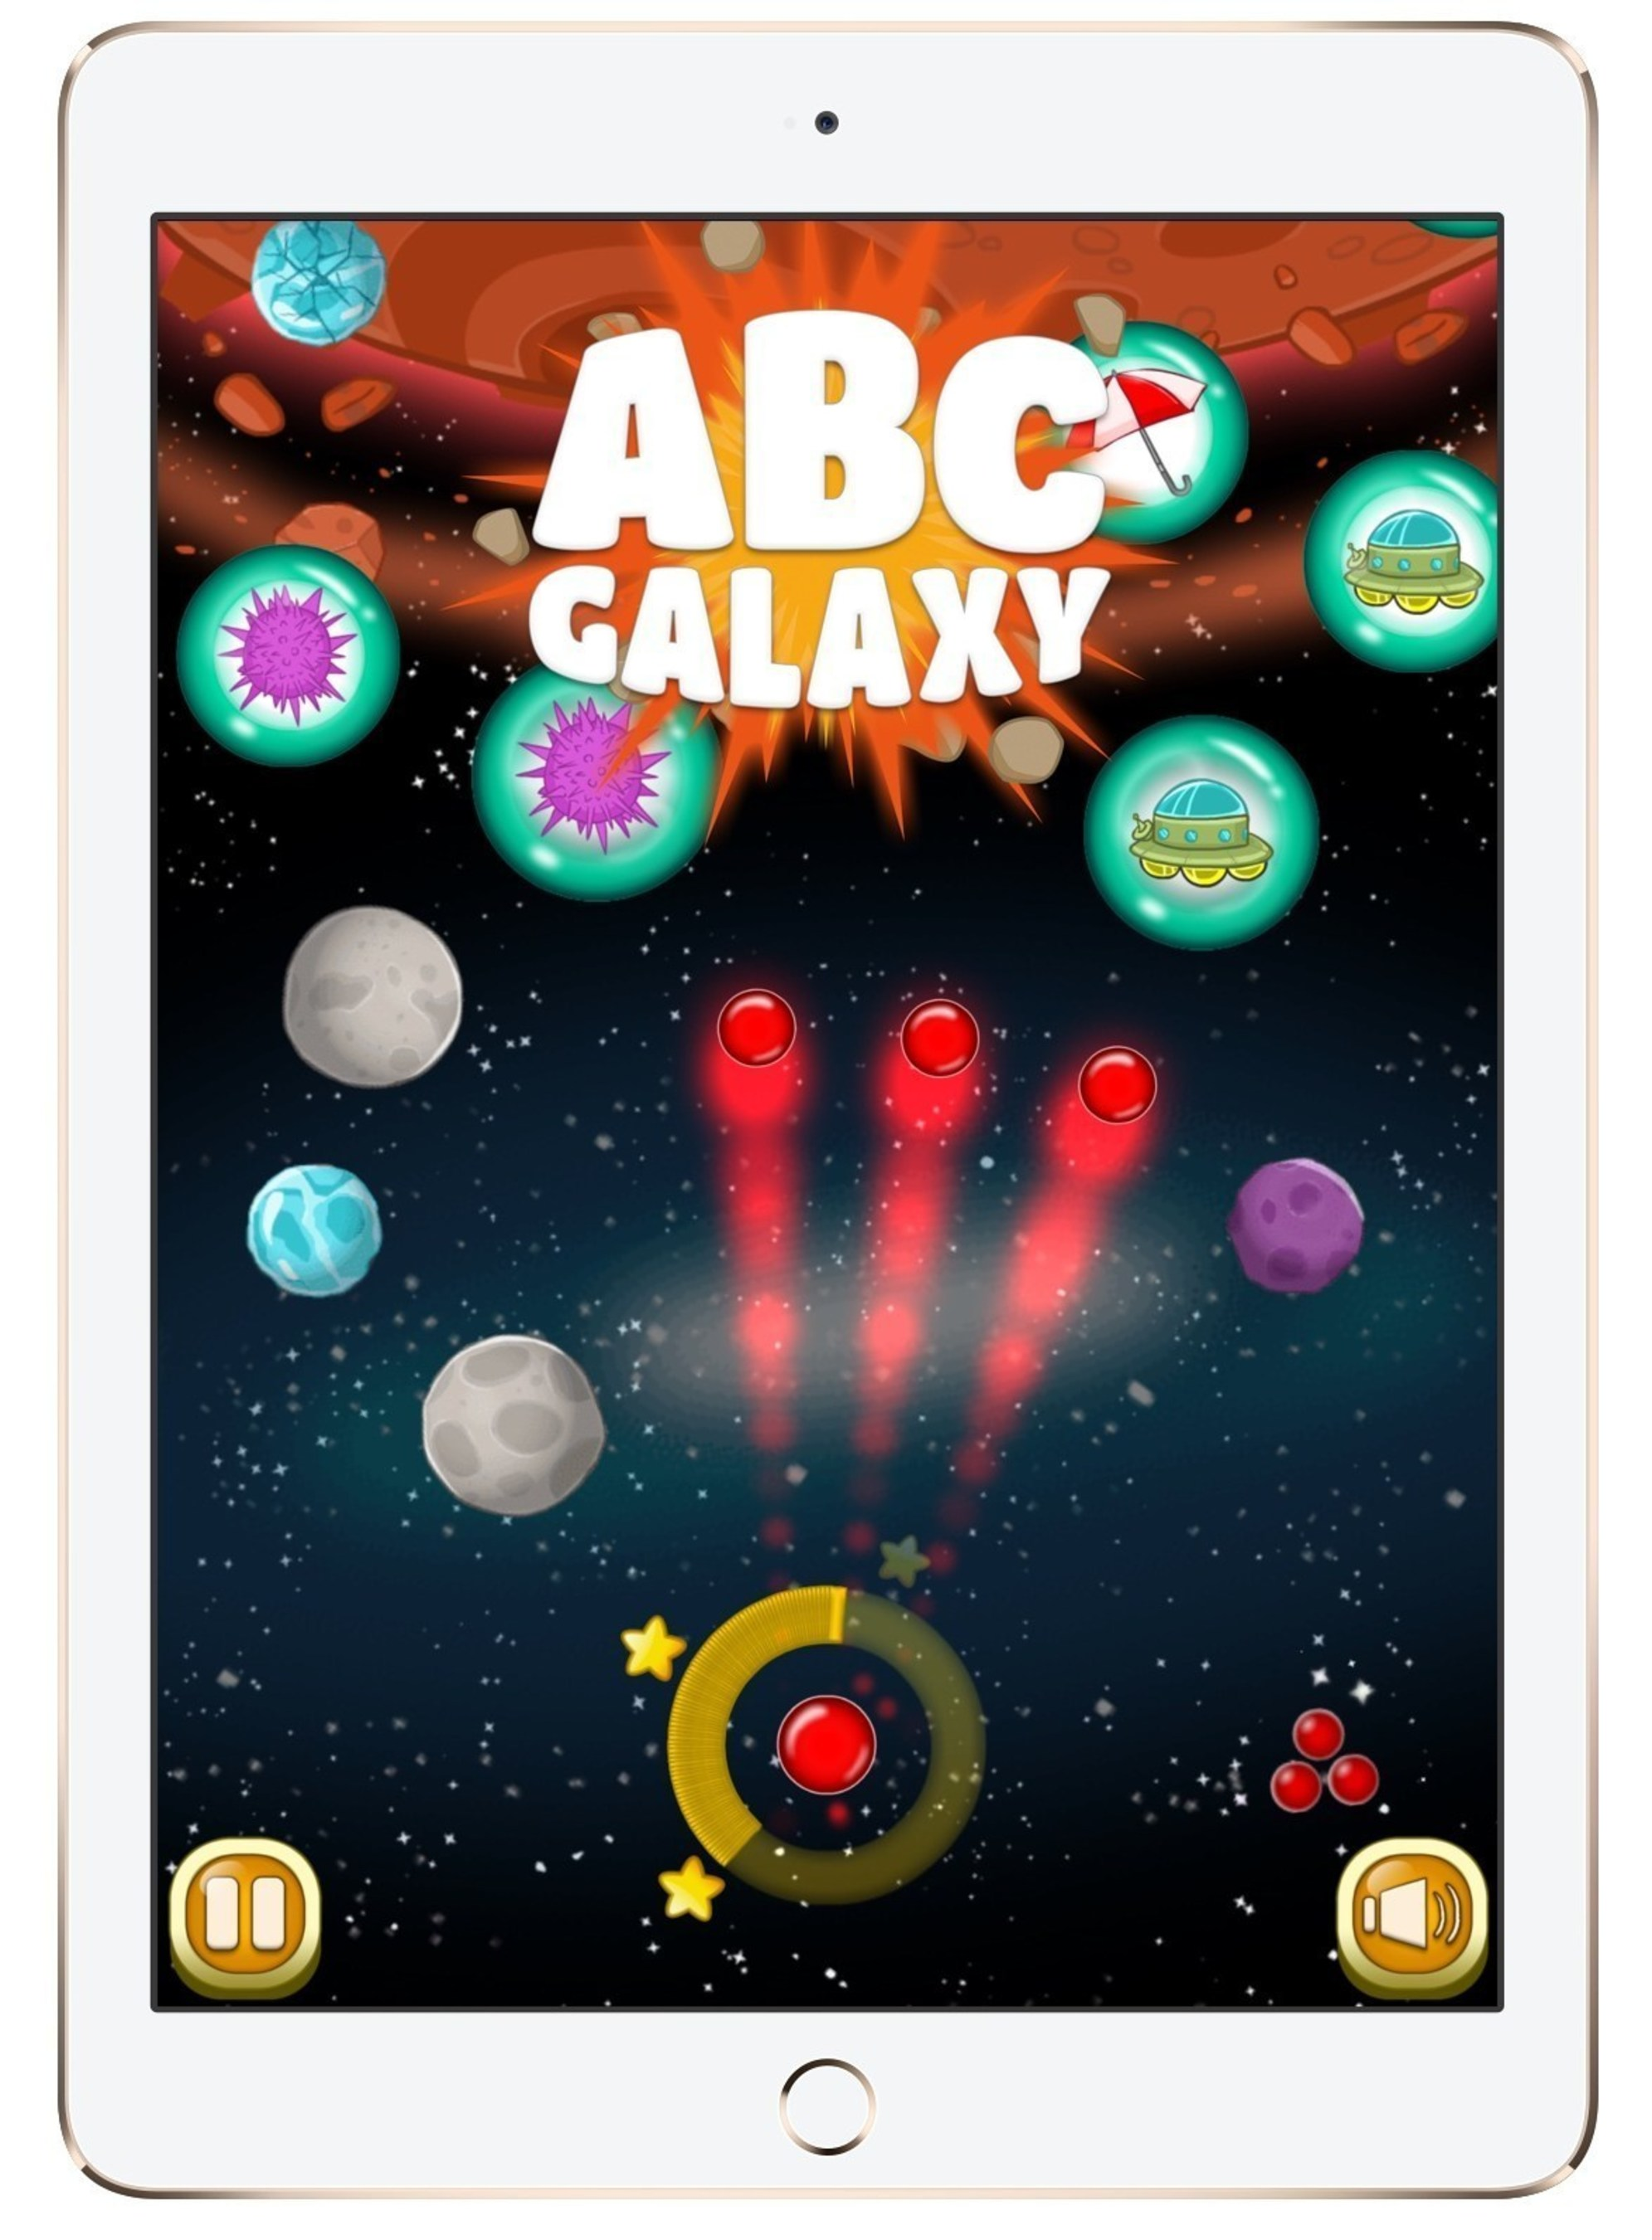 Studycat Announces Launch of ABC Galaxy, a New One and Two Player English Language Learning App for Kids